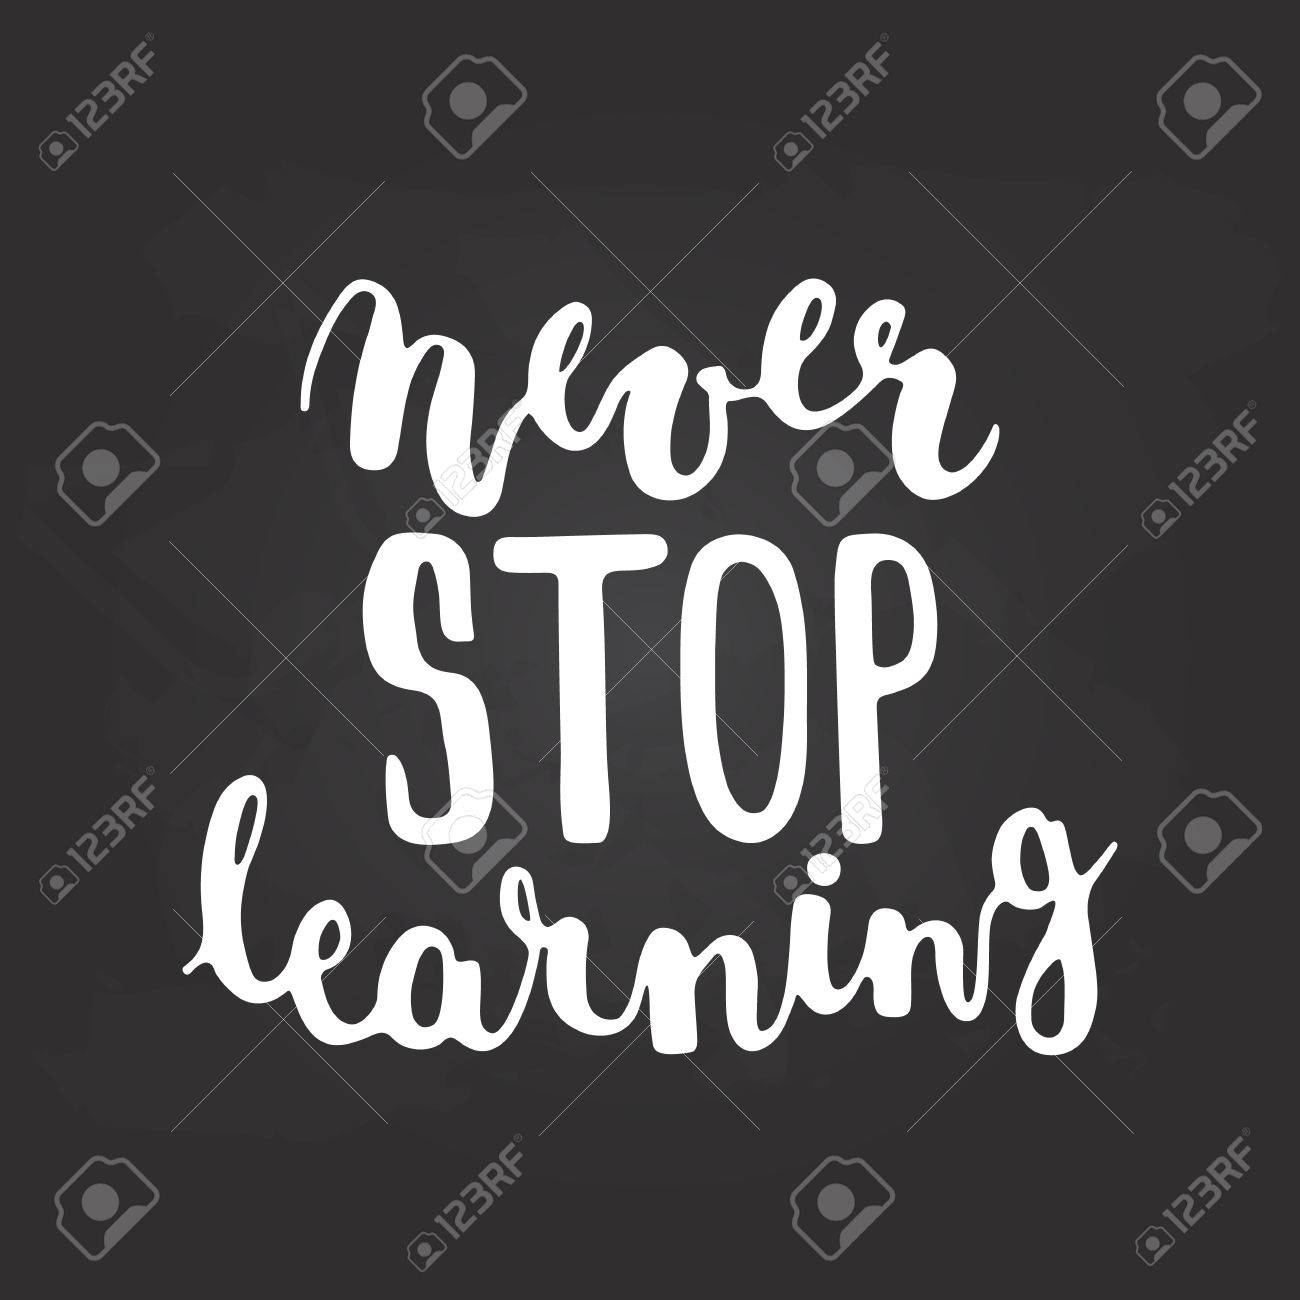 Hand Drawn Chalk Typography Lettering Phrase Never Stop Learning Isolated On The Black Chalkboard Background